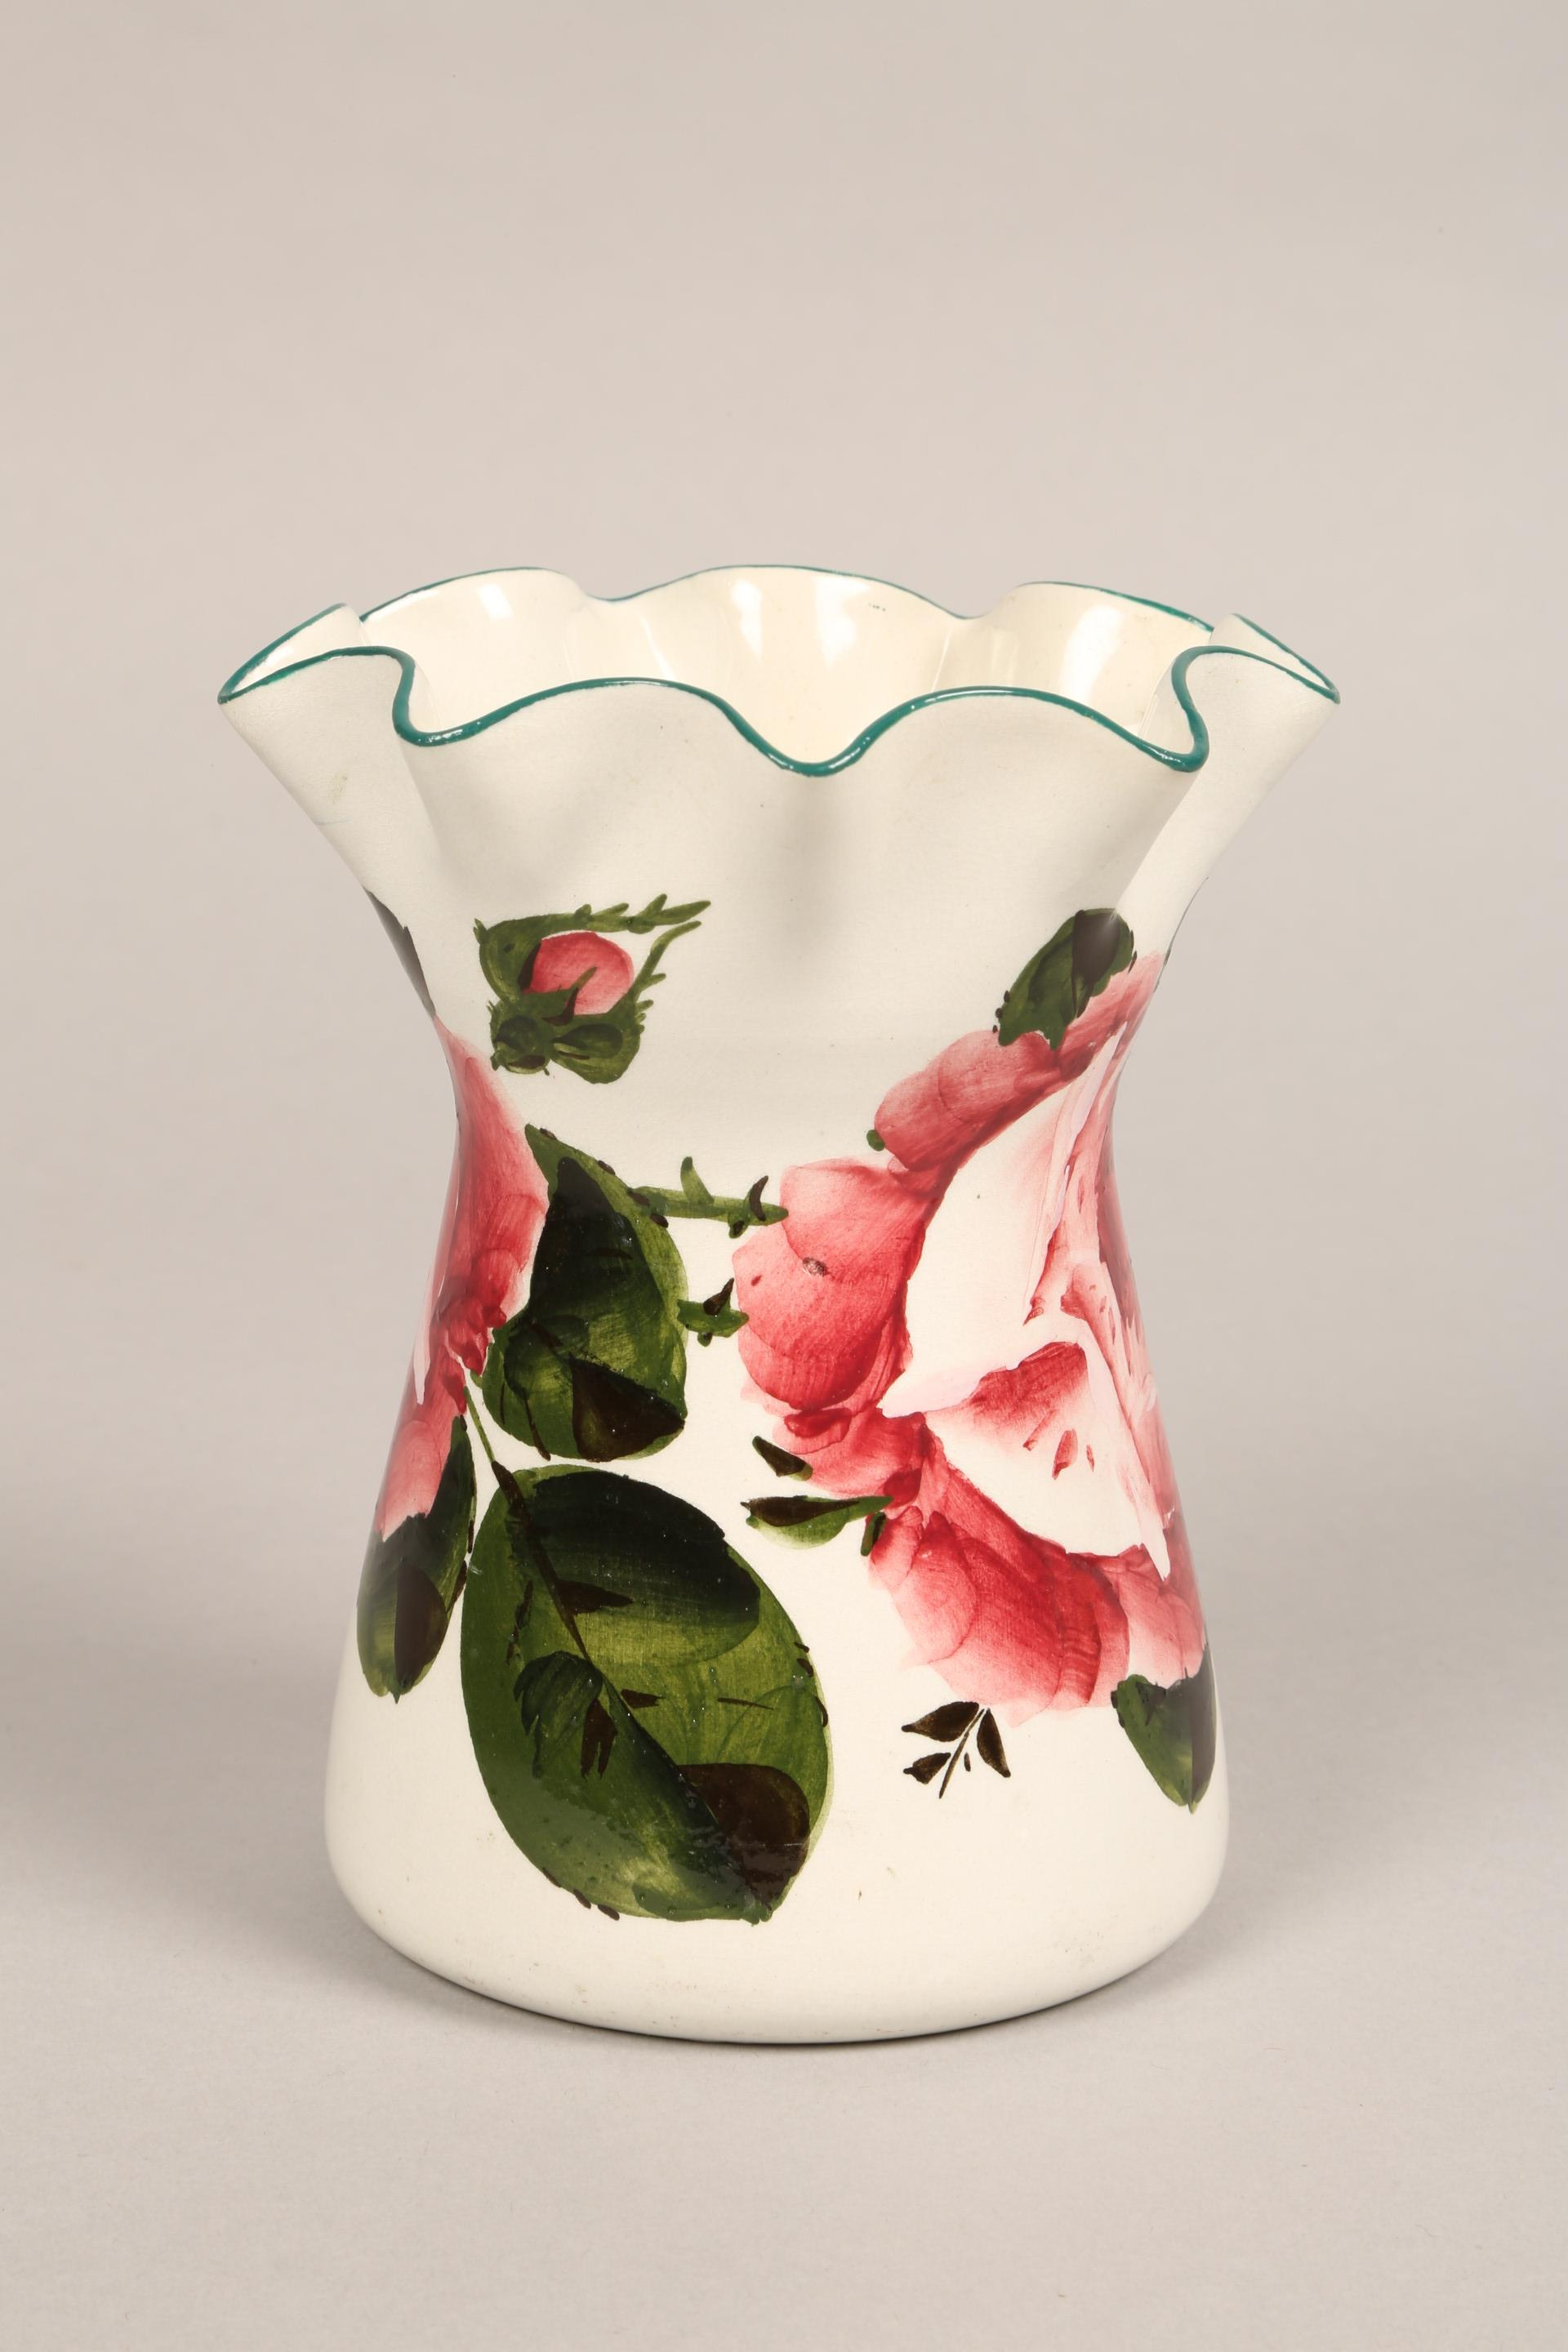 Wemyss pottery vase, lobed rim, hand painted with cabbage roses, incised Wemyss and retailers